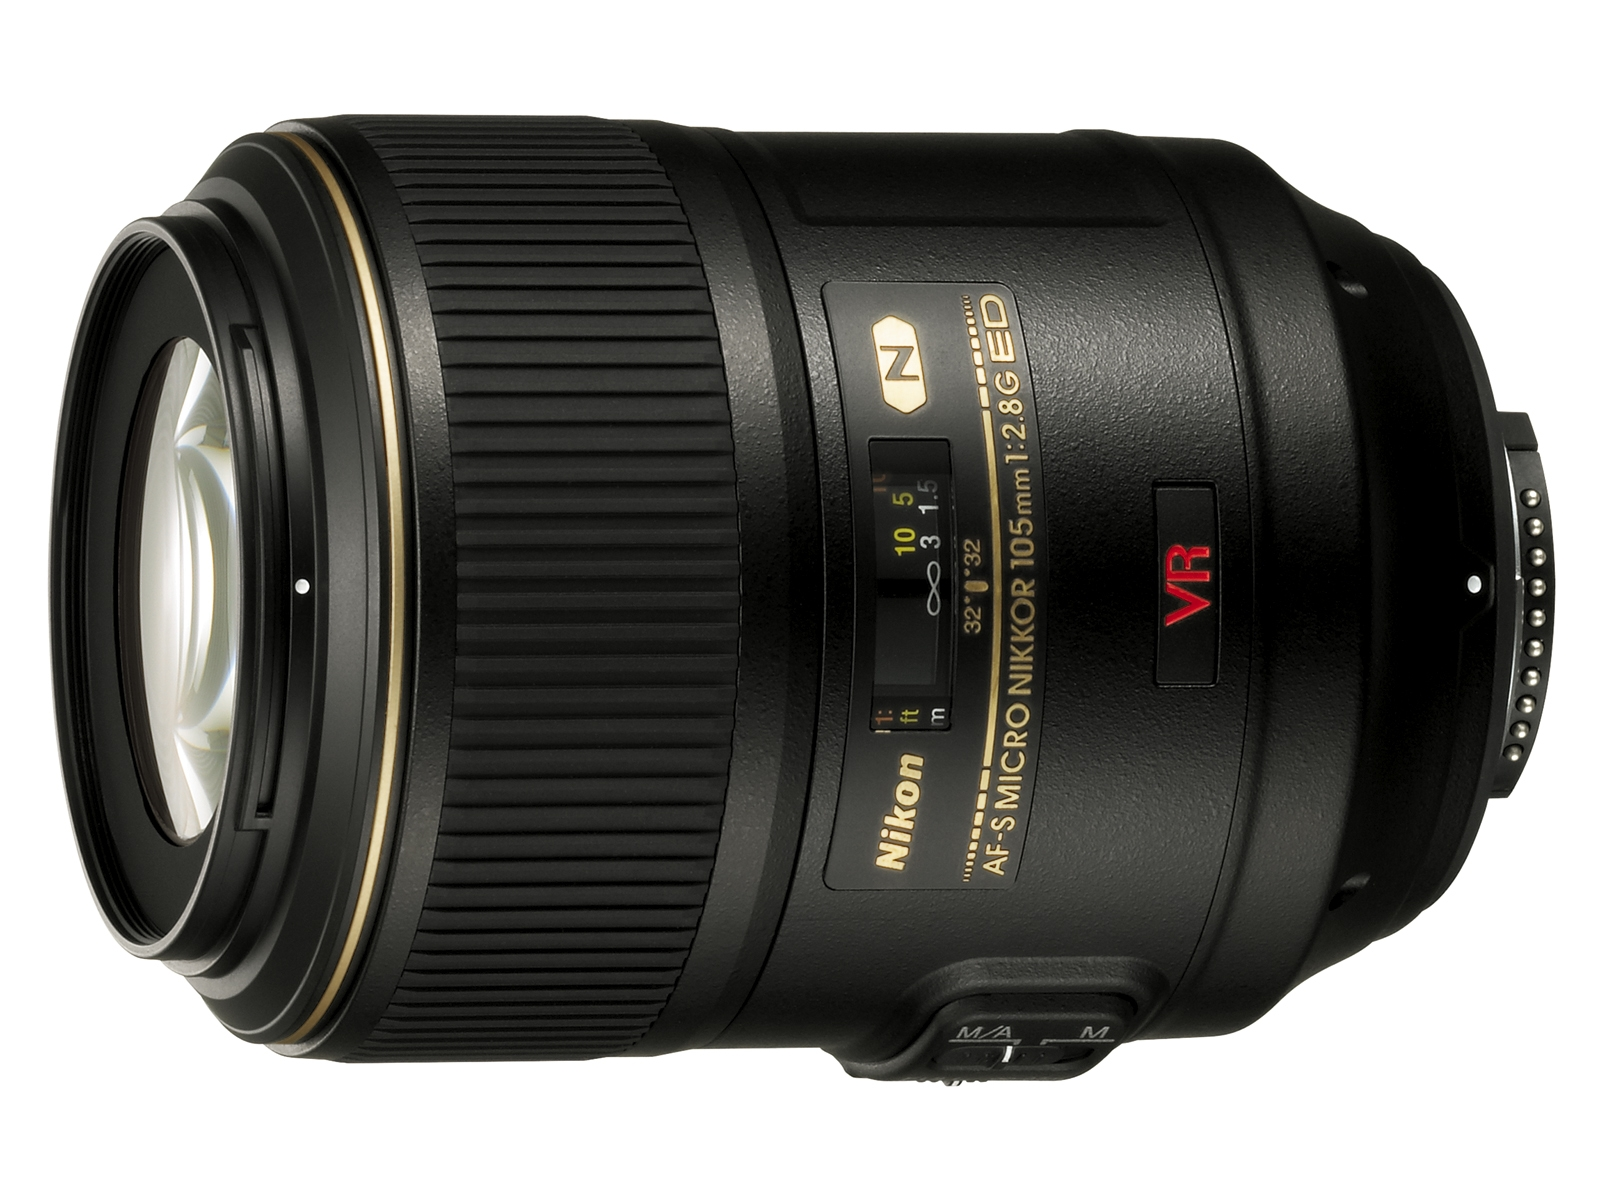 Nikon Micro 105mm f2.8G VR review